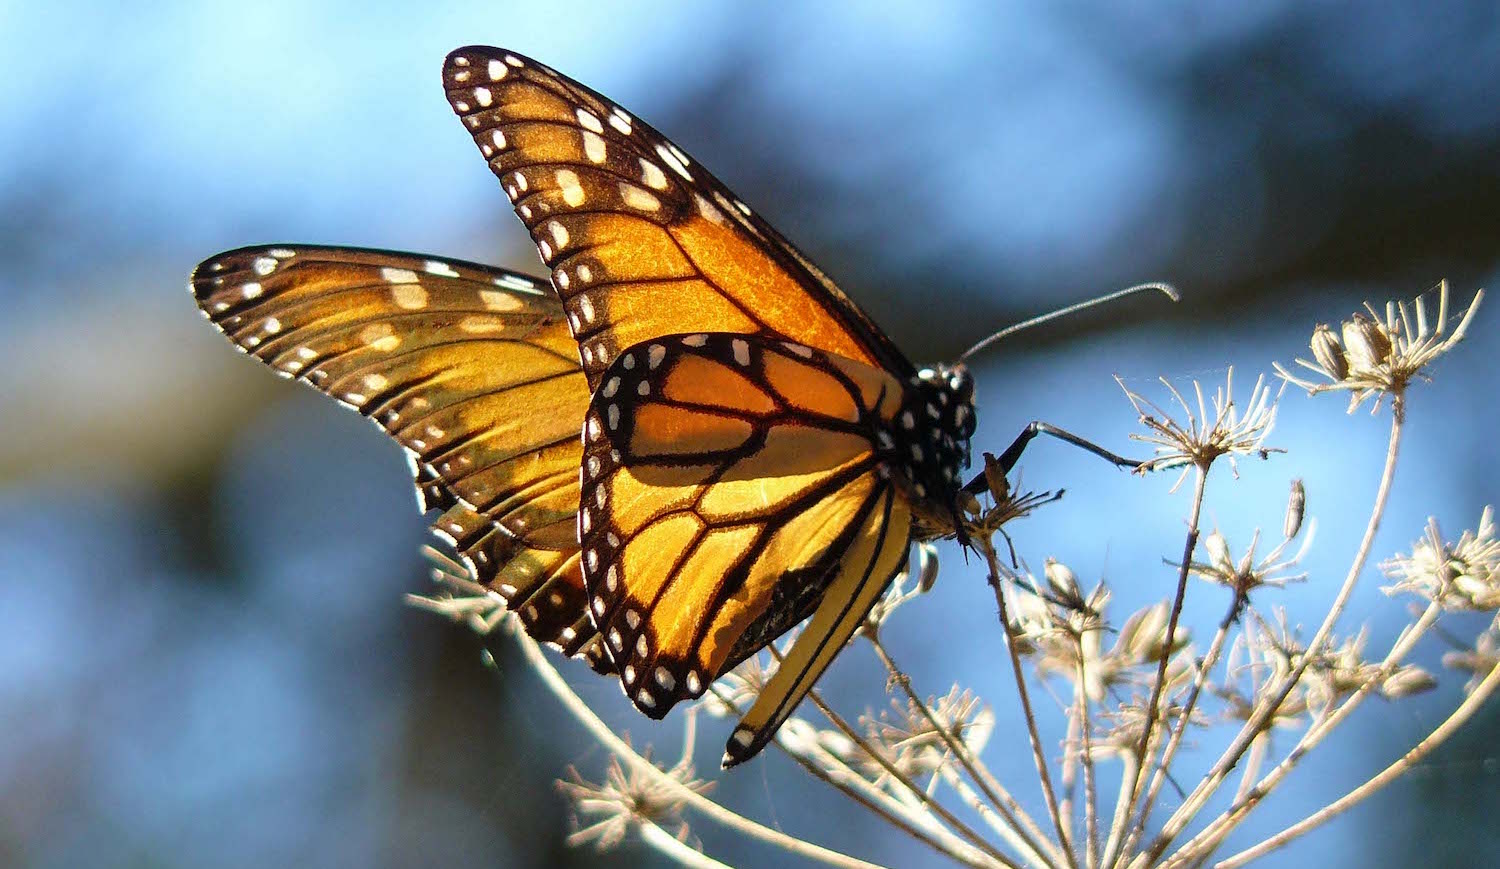 POLL: Should the US FWS be sued for failing to protect the Monarch butterfly?